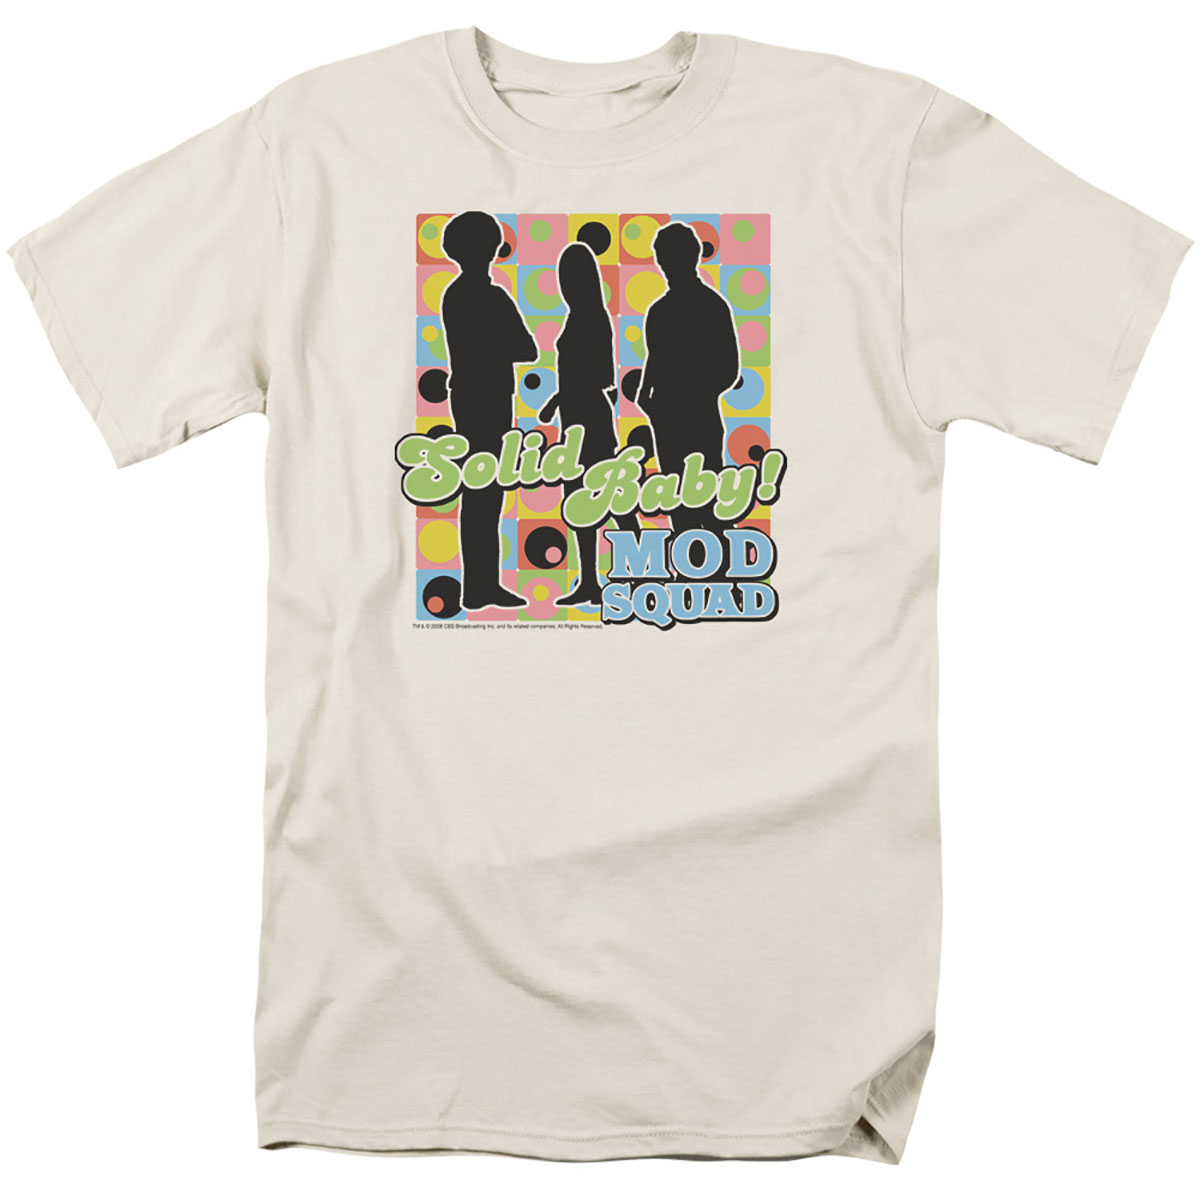 1960s – 70s Mens Shirts- Disco Shirts, Hippie Shirts Mod Squad Solid Baby Mod Pattern T-Shirt $25.99 AT vintagedancer.com